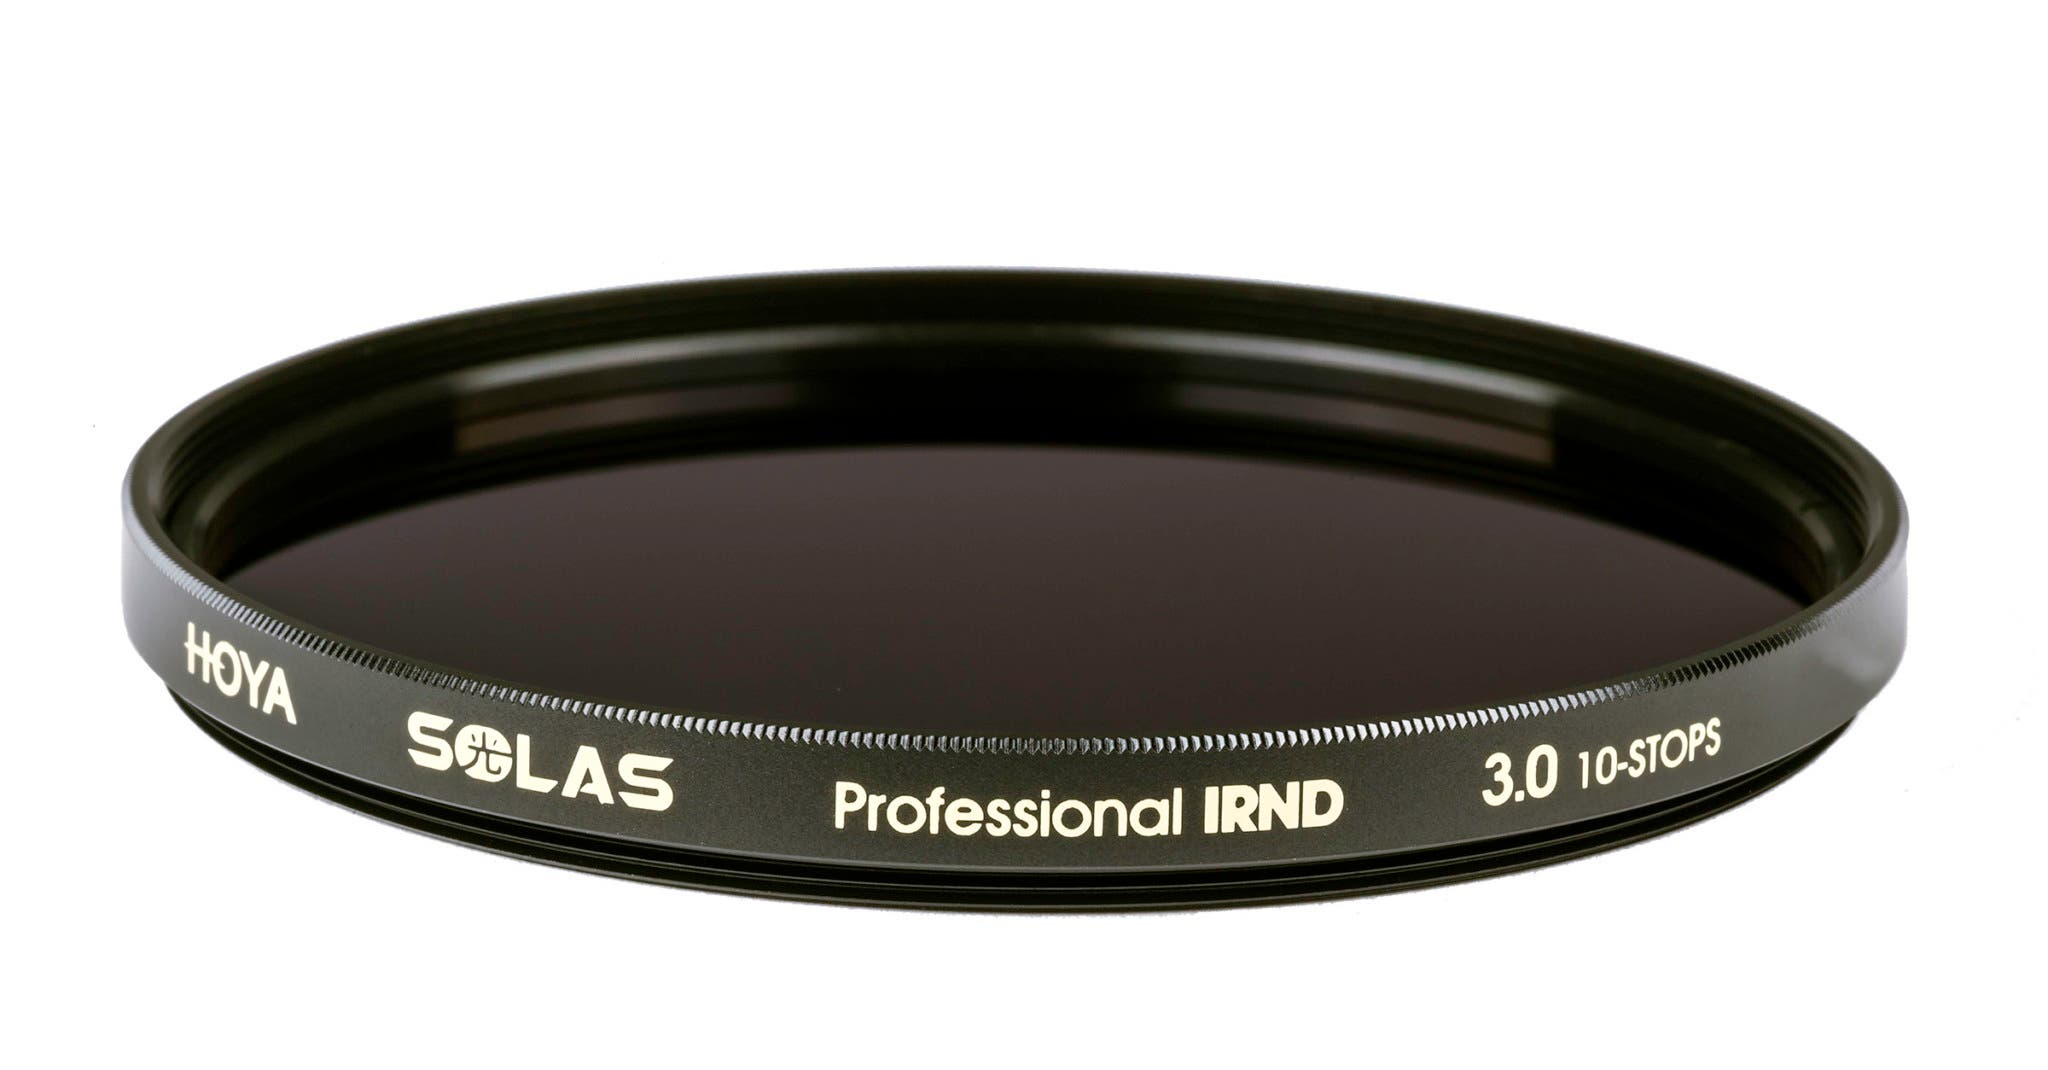 Hoya Launches New Solas IRND Infrared Neutral Density Filters